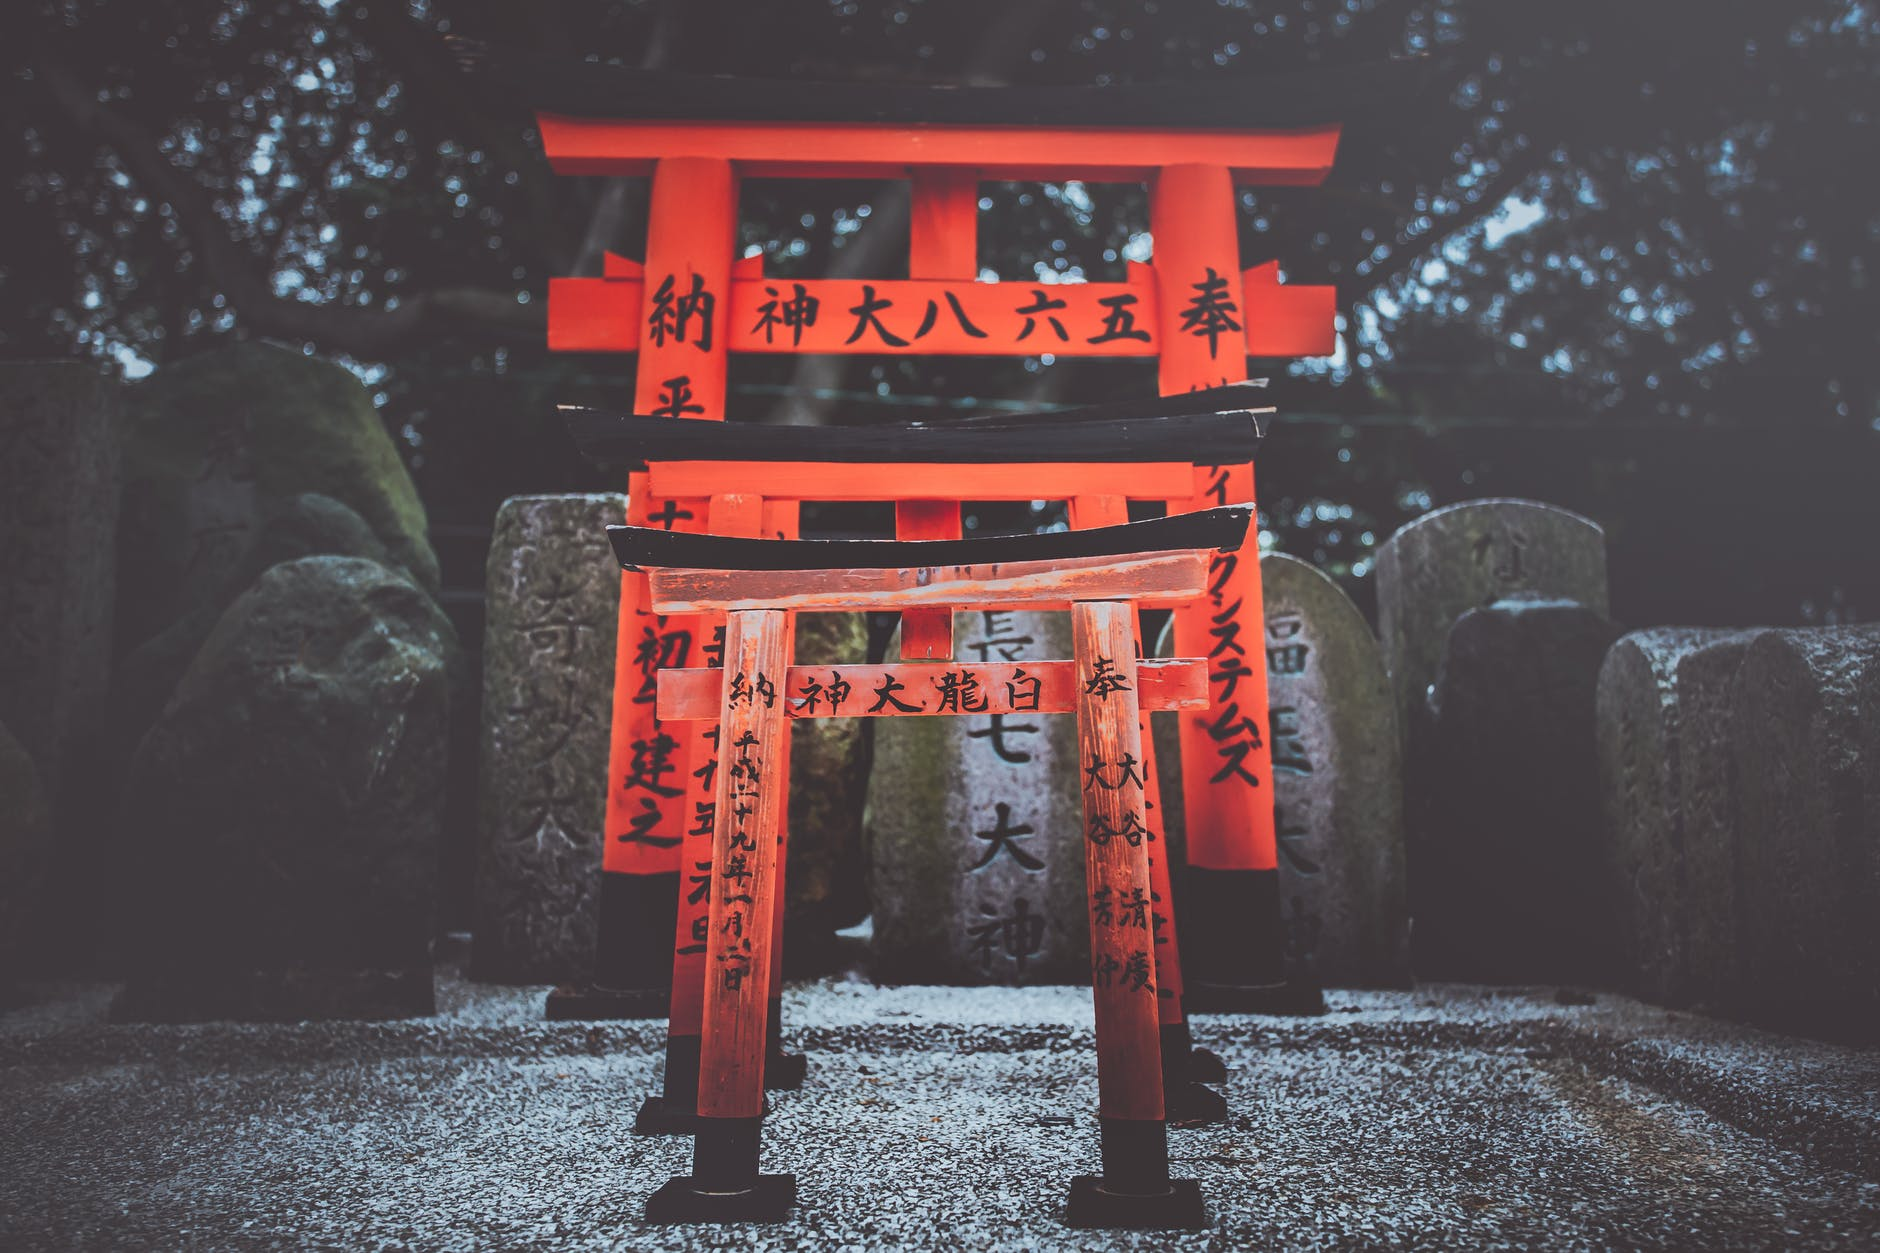 3 red Japanese torii gates with calligraphy painted on them